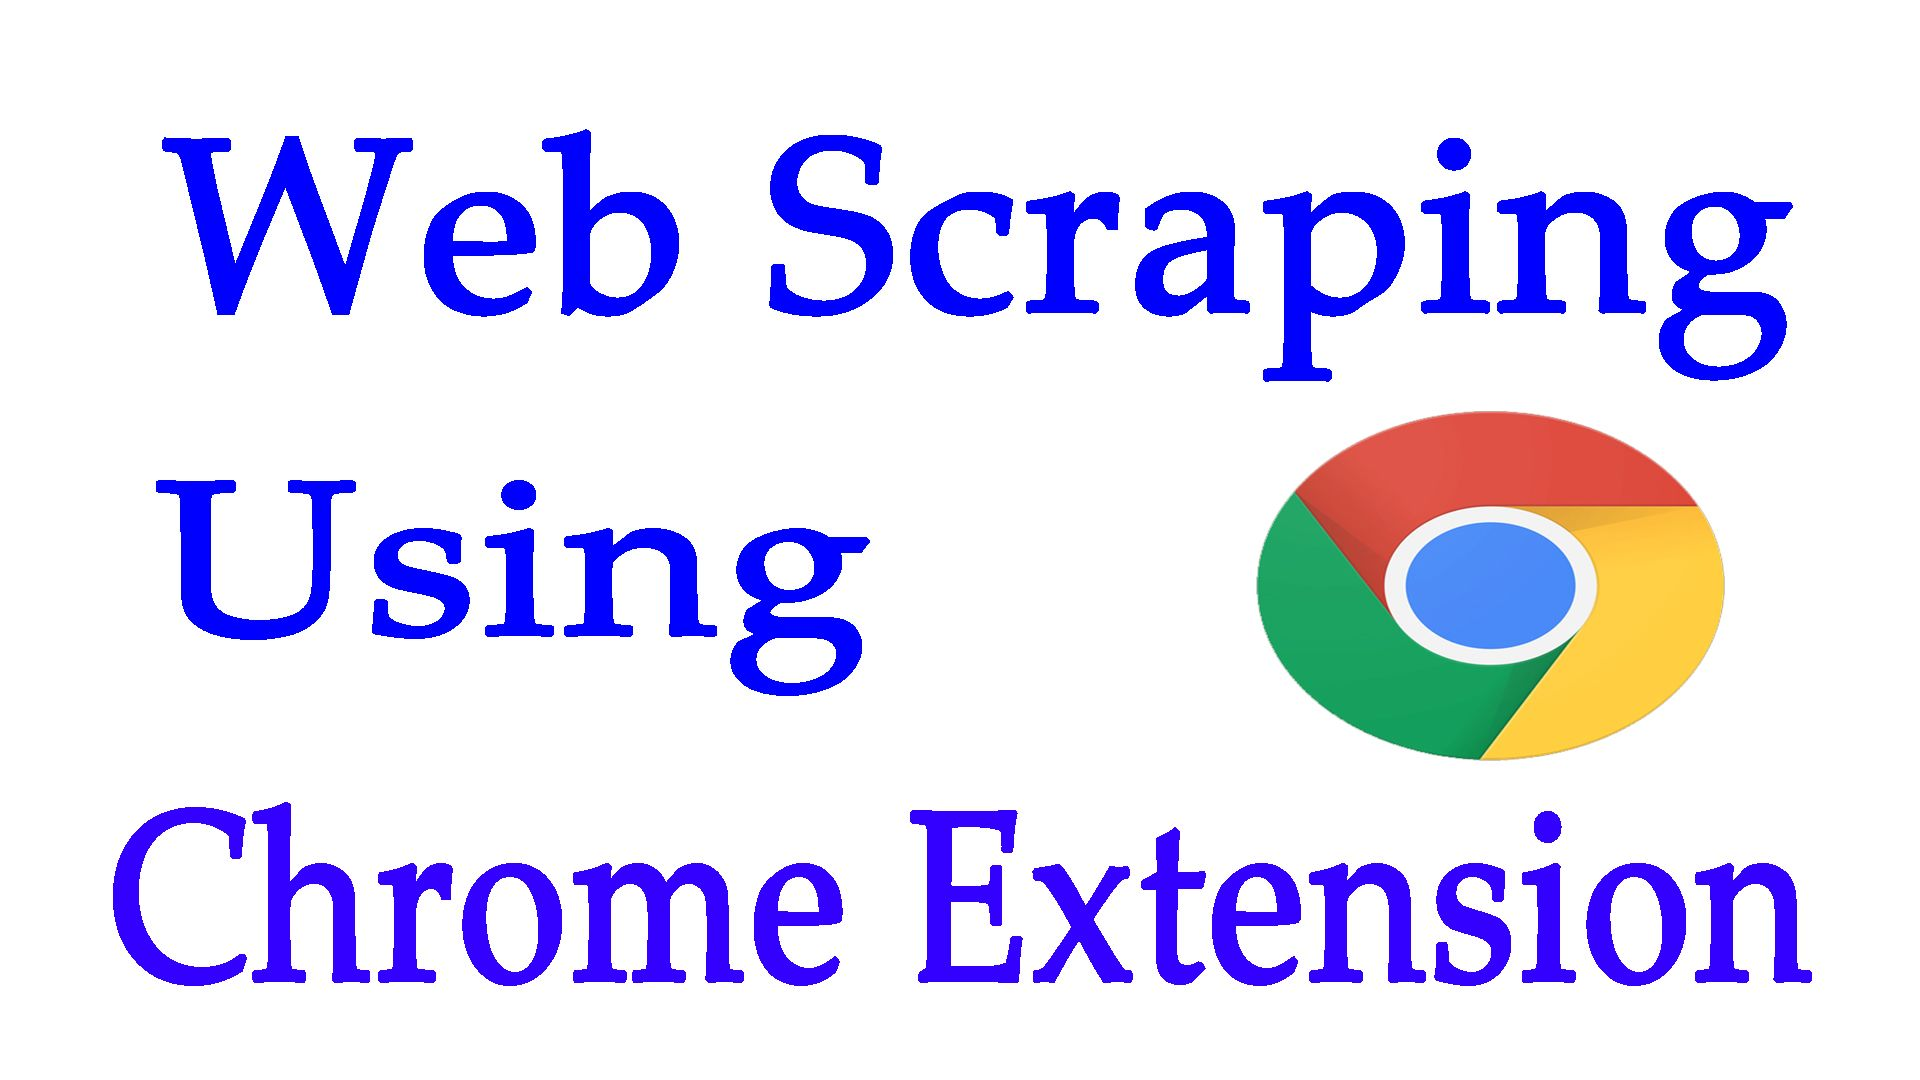 If you need any Web Scraping Service, Data Entry